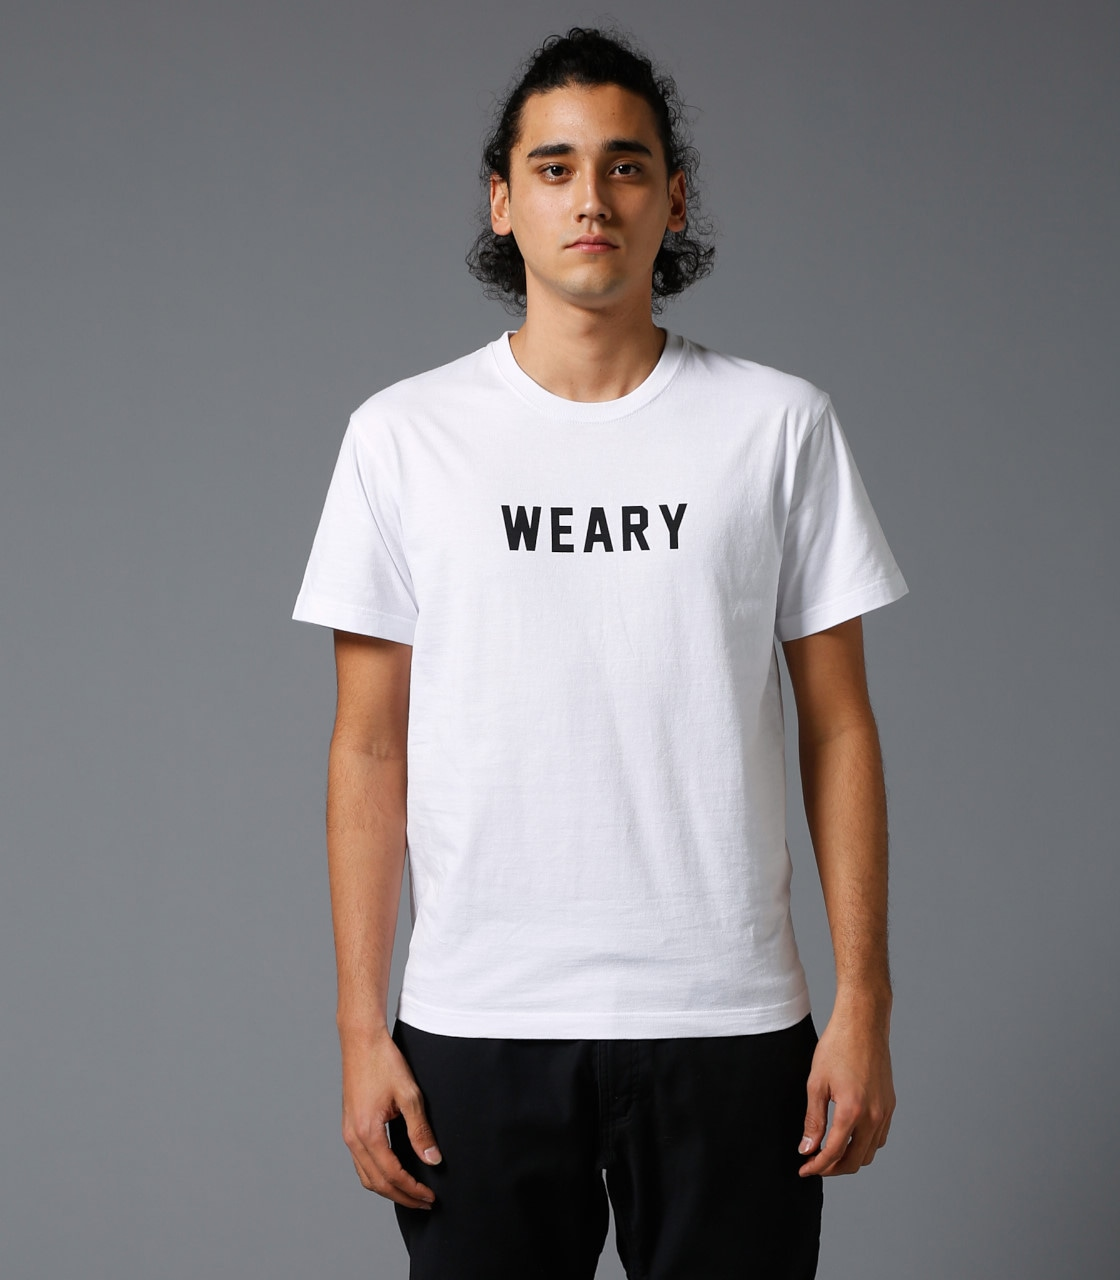 【AZUL BY MOUSSY】WEARY 半袖T 詳細画像 WHT 5